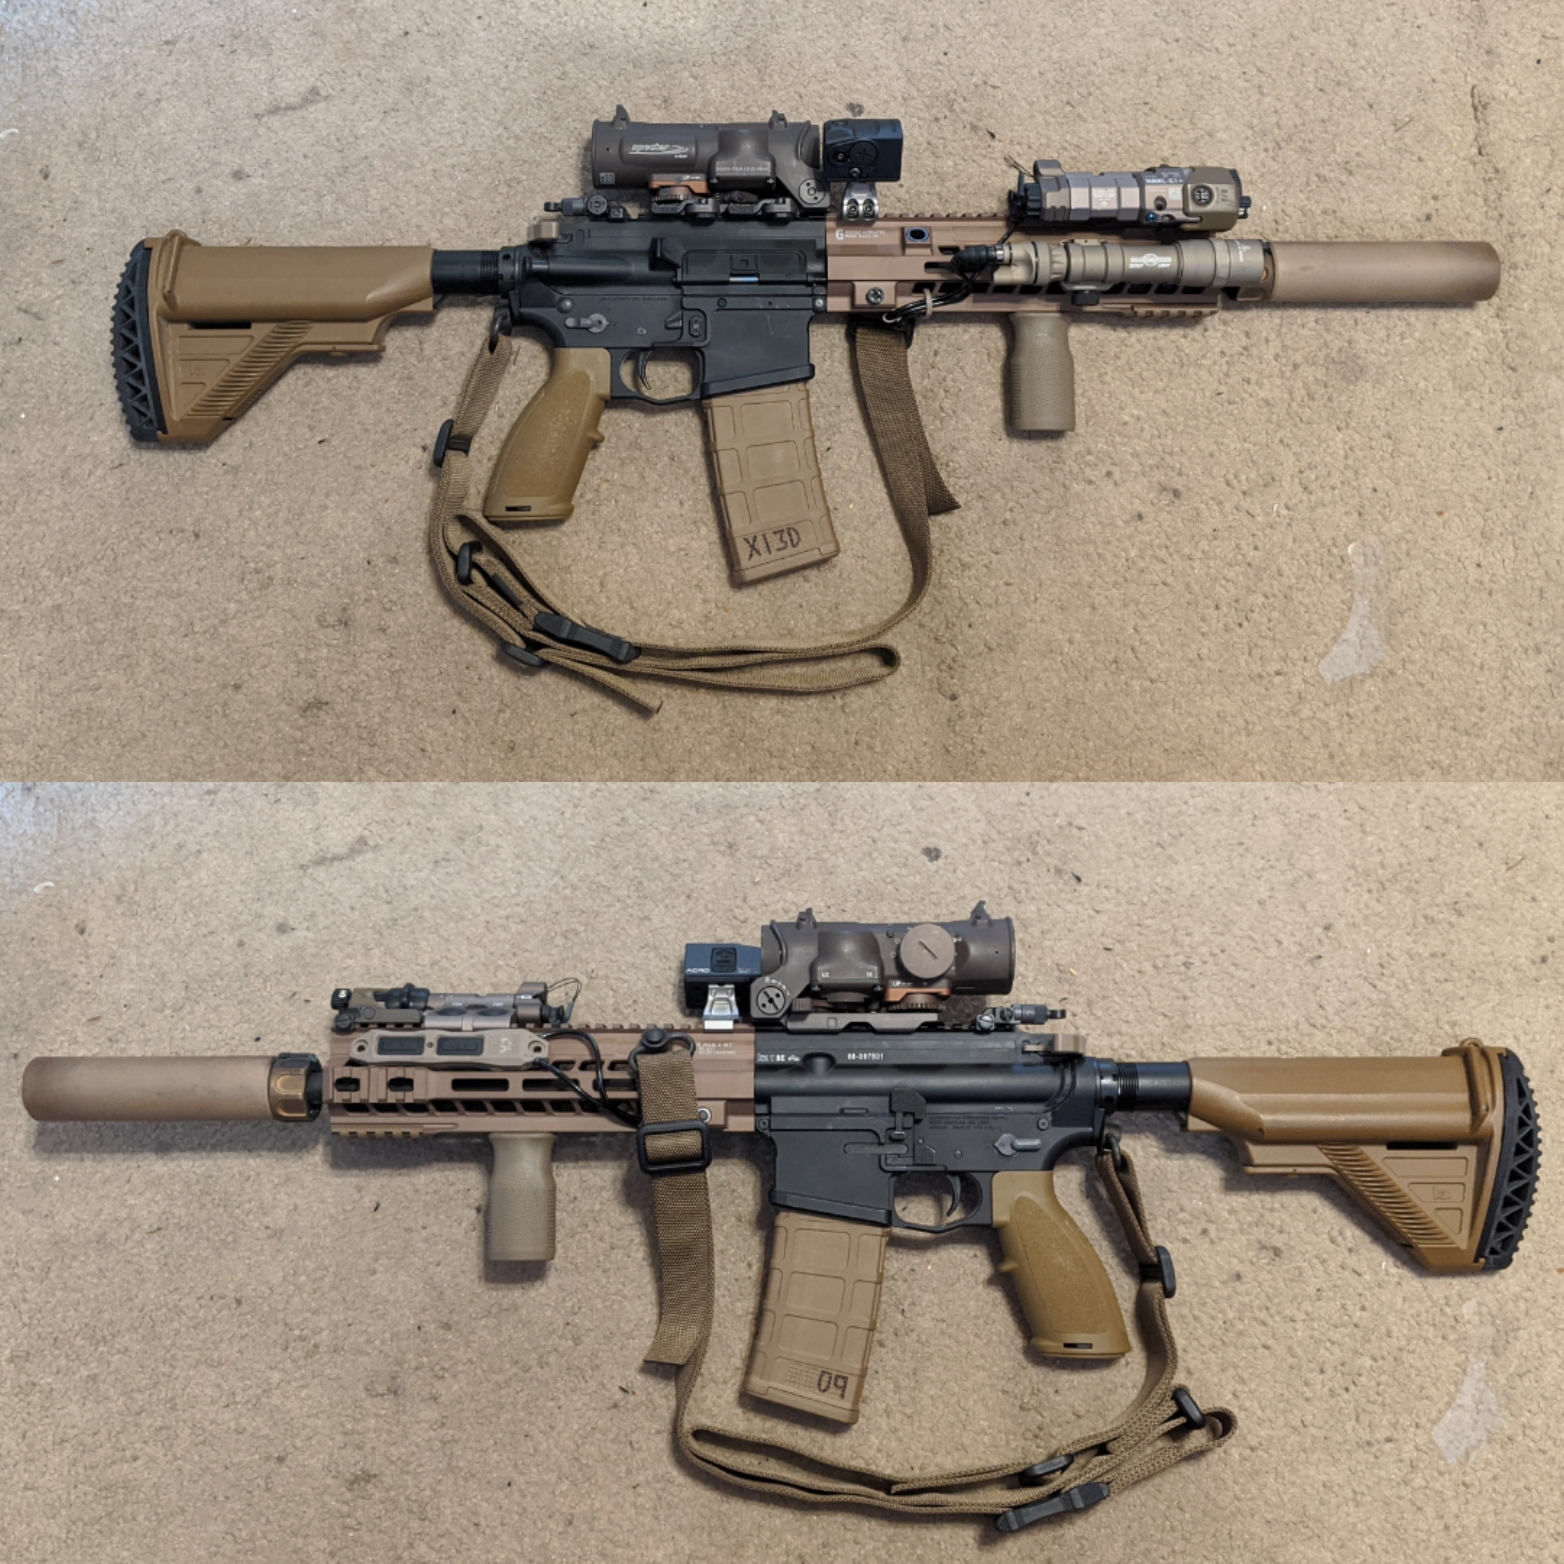 HK416 Close Quarters Carbine built with DARC lessons in mind: the subject of discussion.